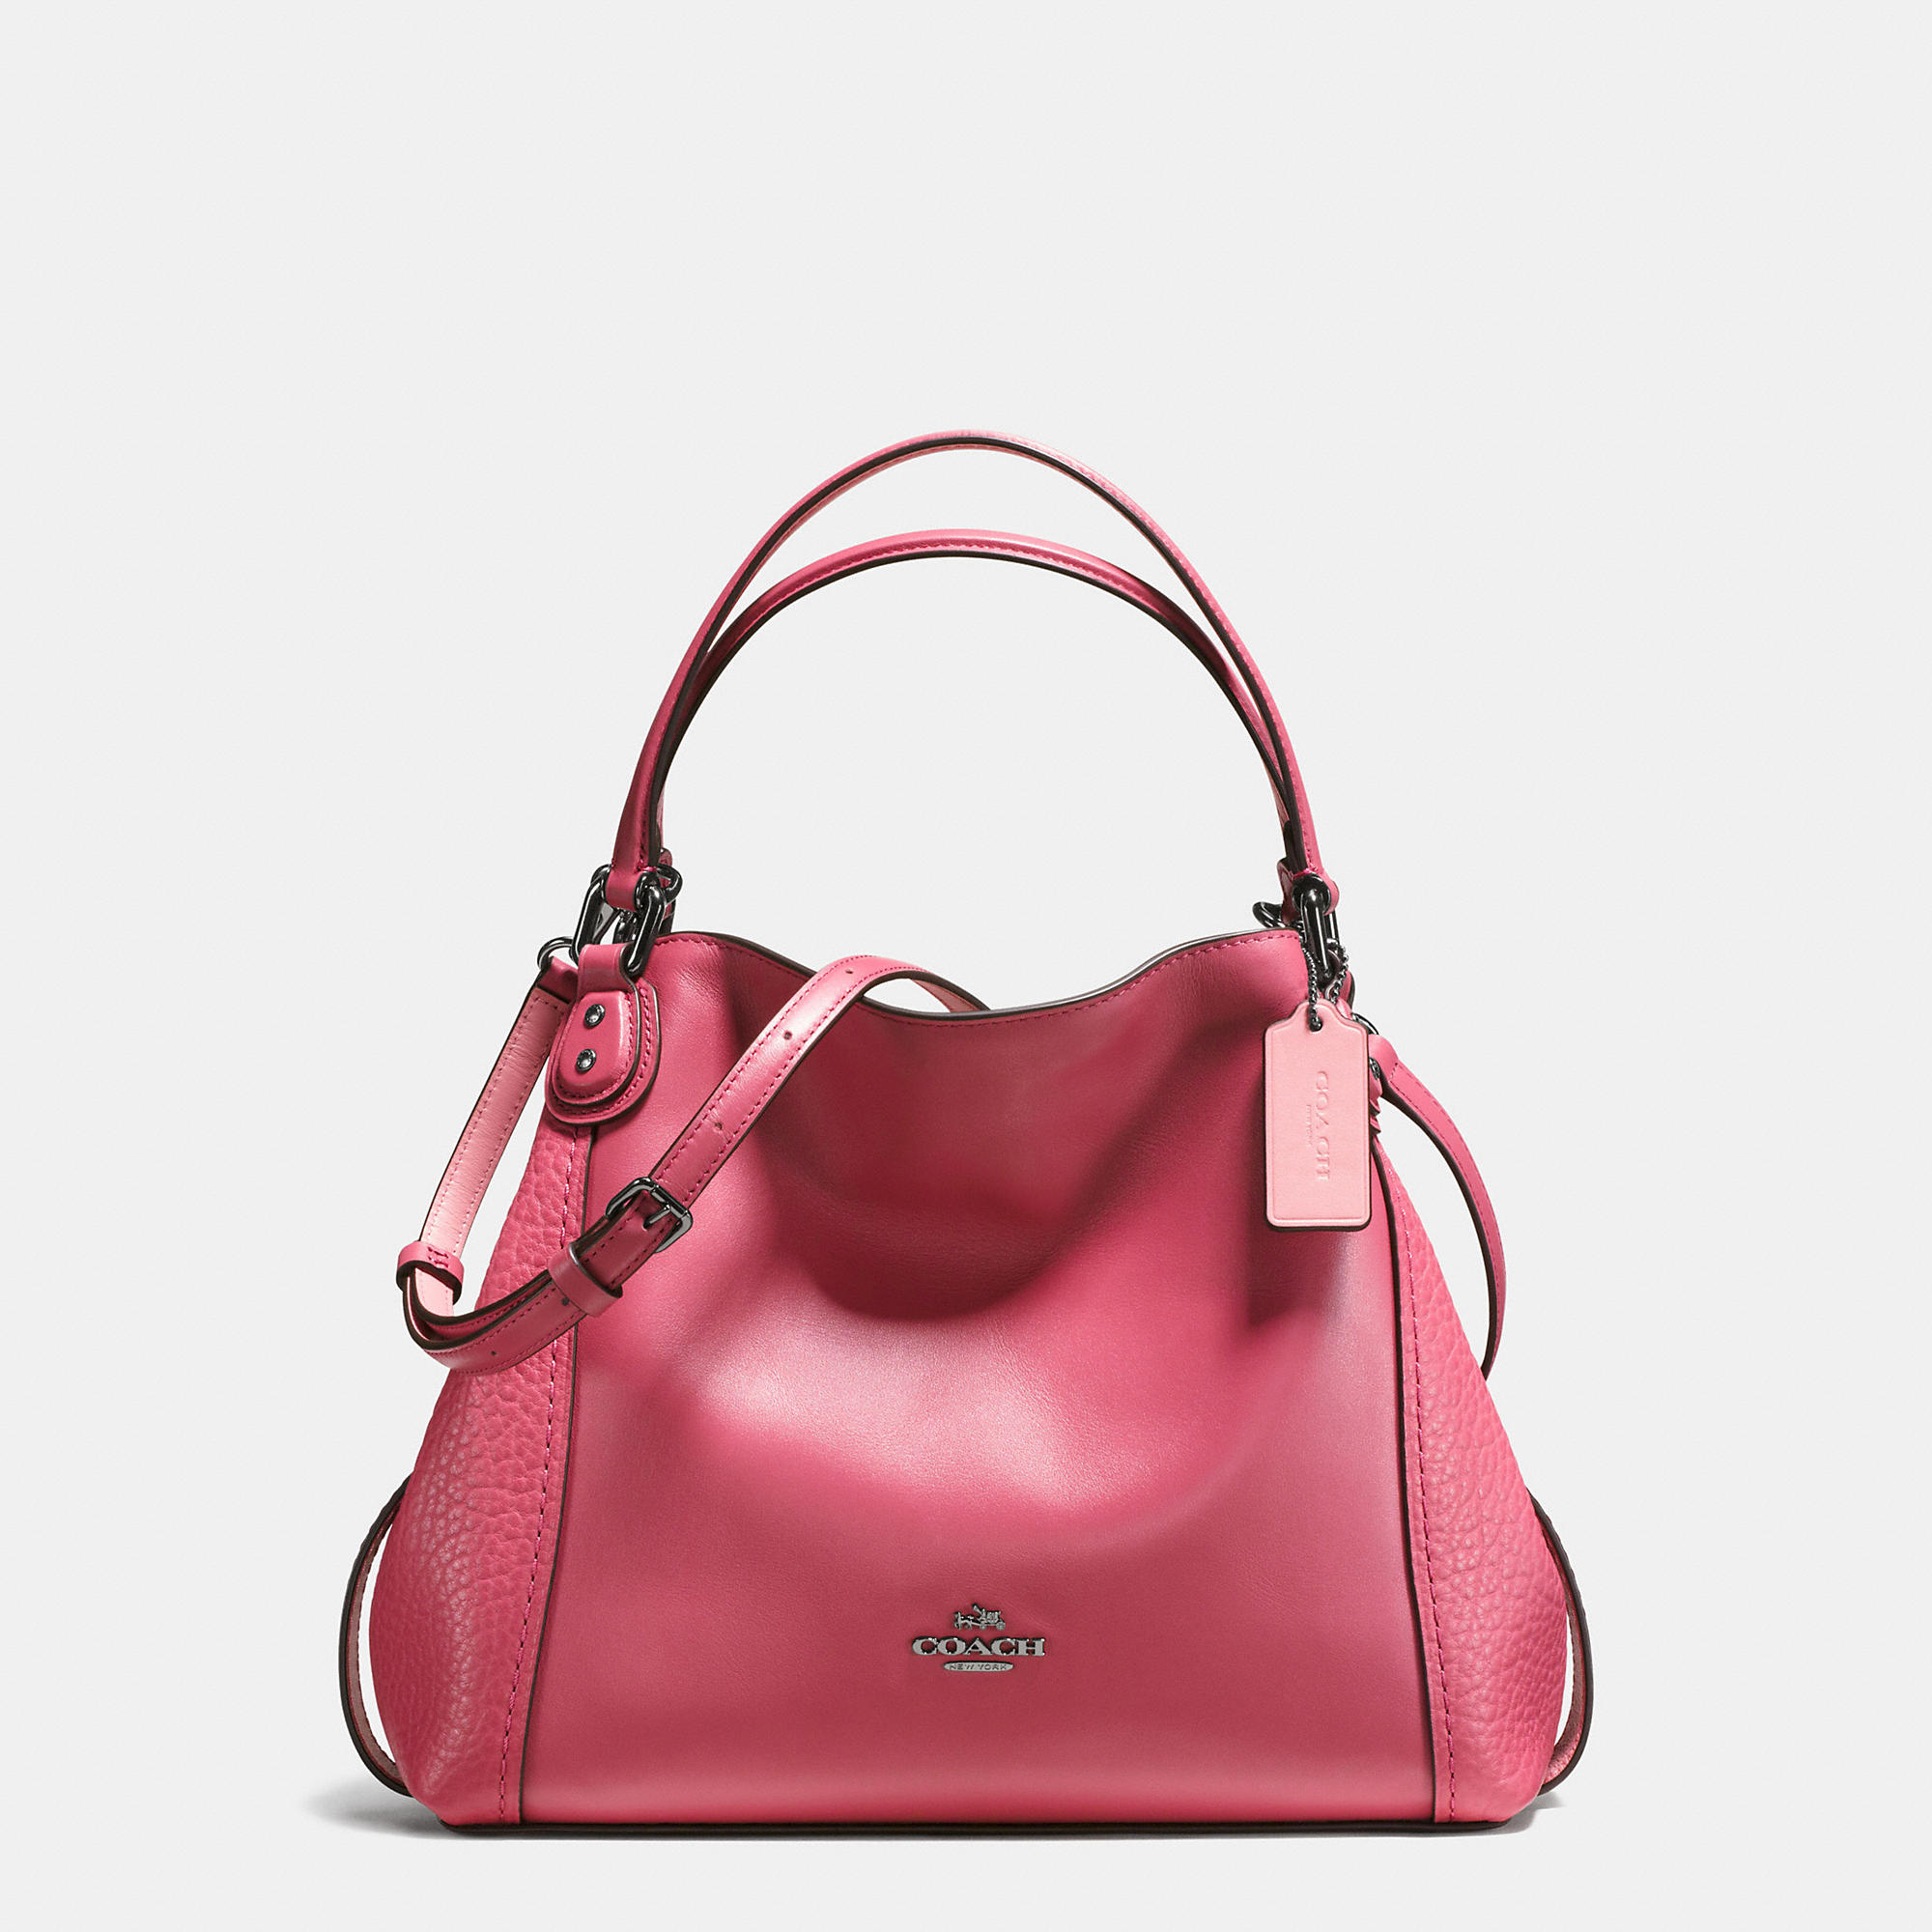 Coach Edie Shoulder Bag 28 In Mixed Leathers